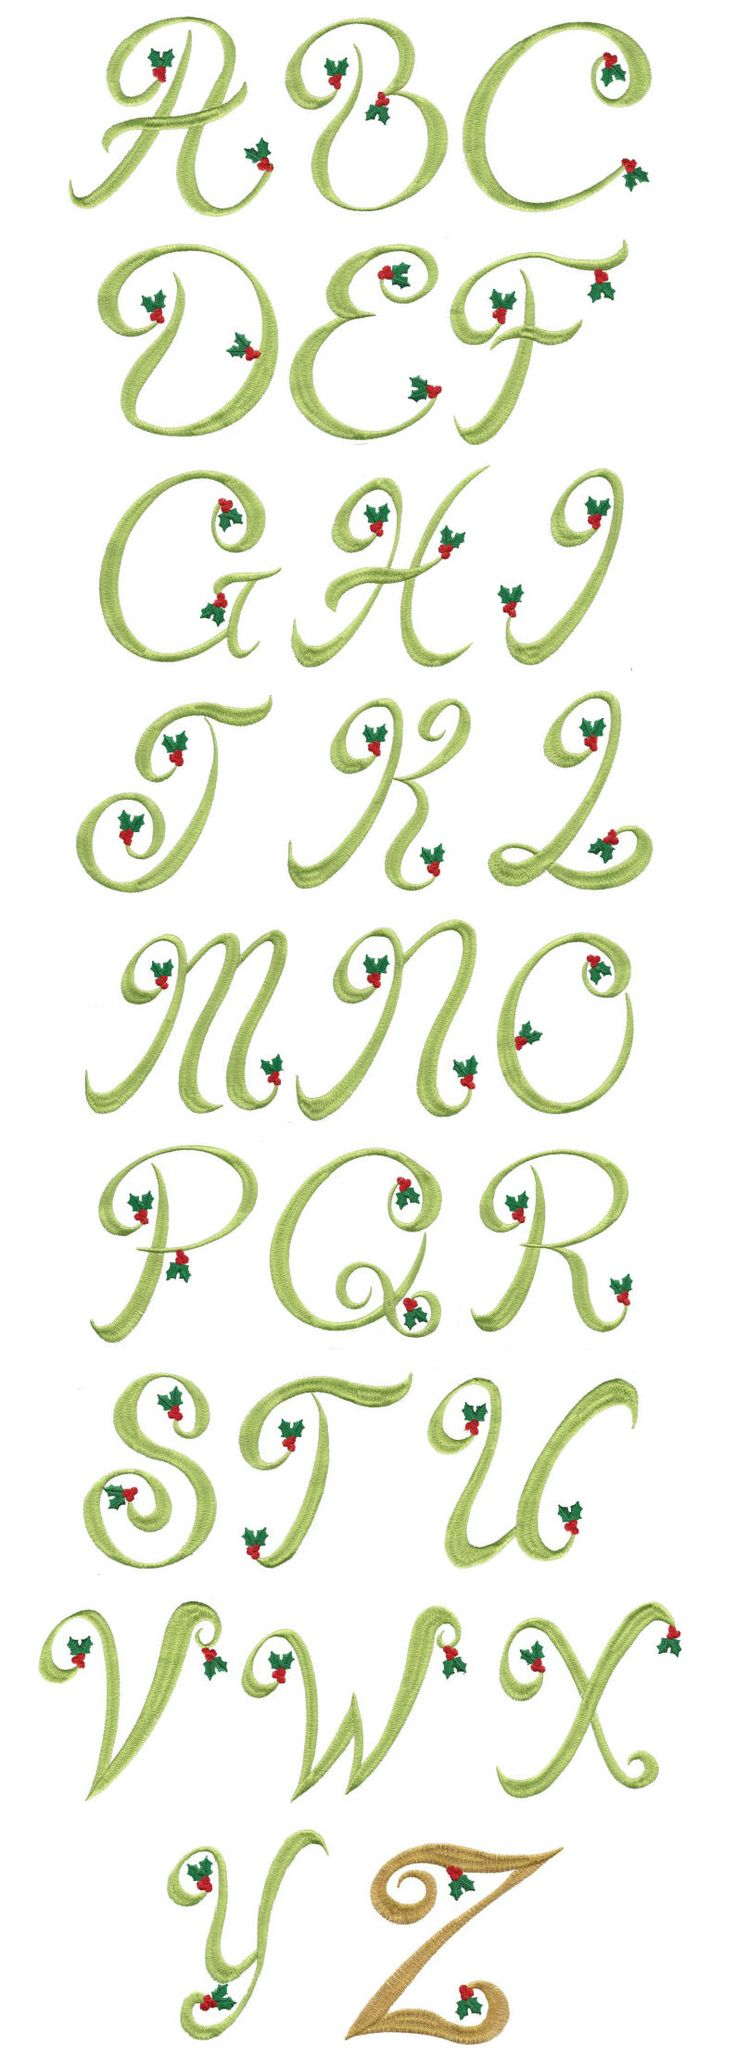 Embroidery Designs | Monogram Font Machine Embroidery Designs | Christmas Holly Monogram